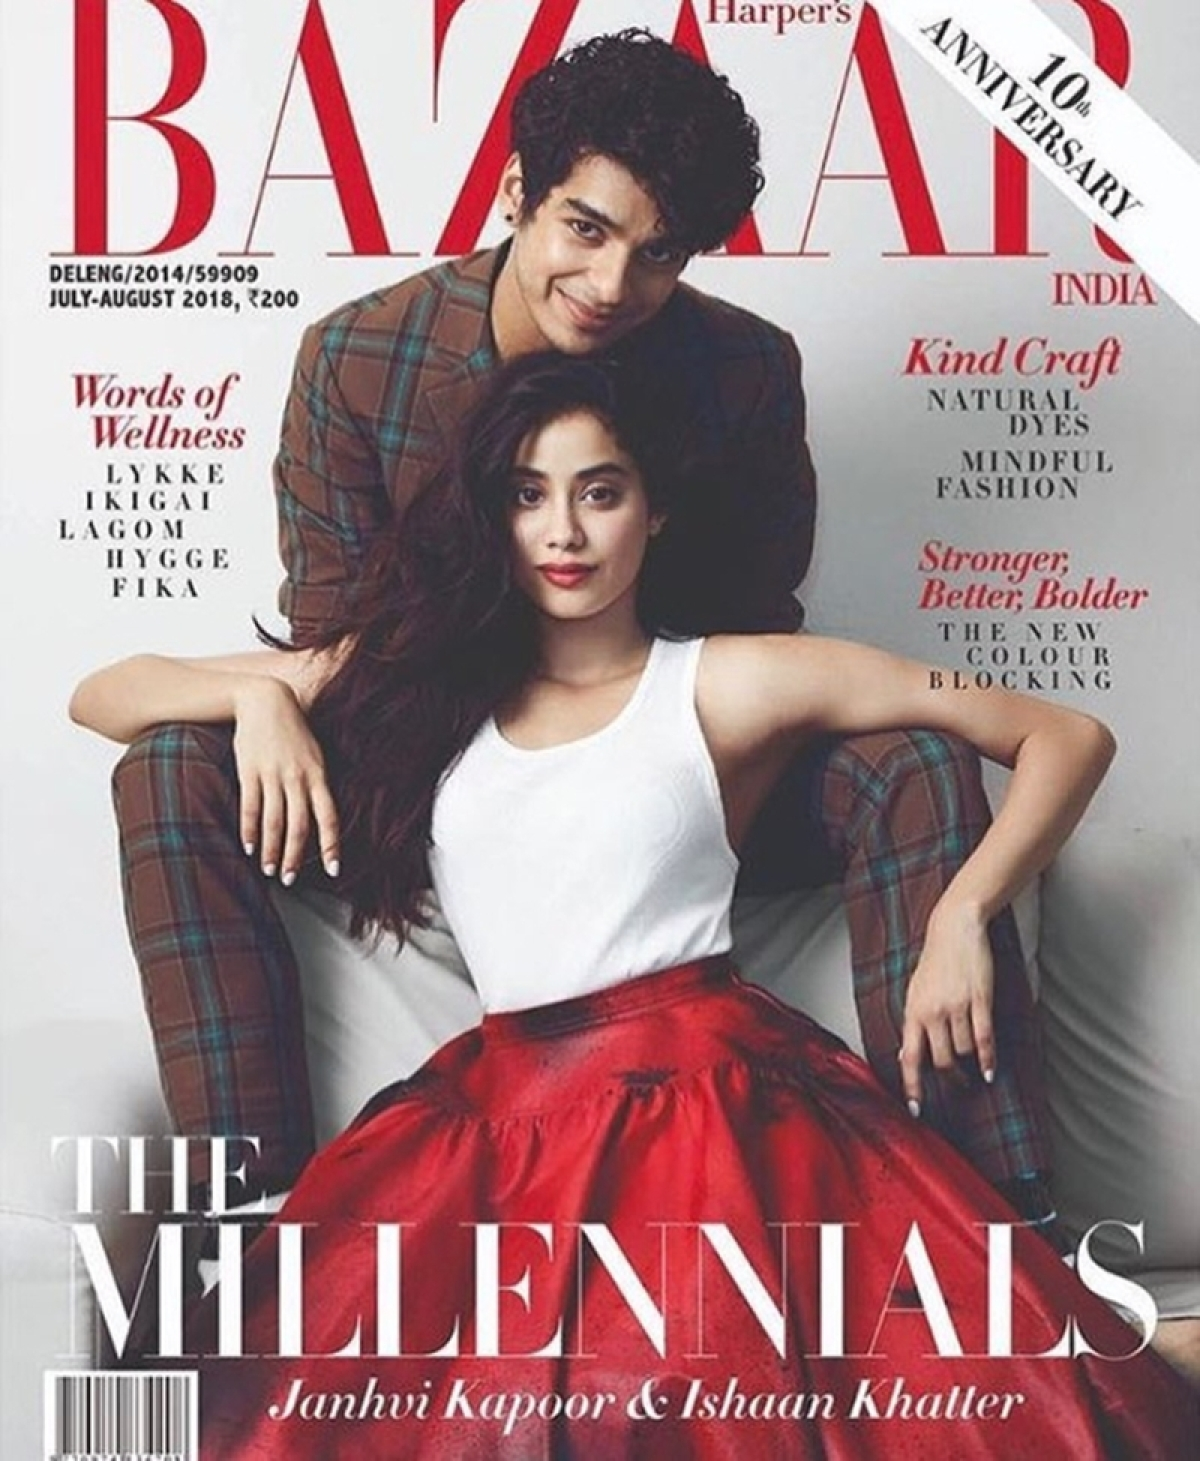 Millennials Janhvi Kapoor and Ishaan Khatter dazzle as cover stars for Harper's Bazaar this month!